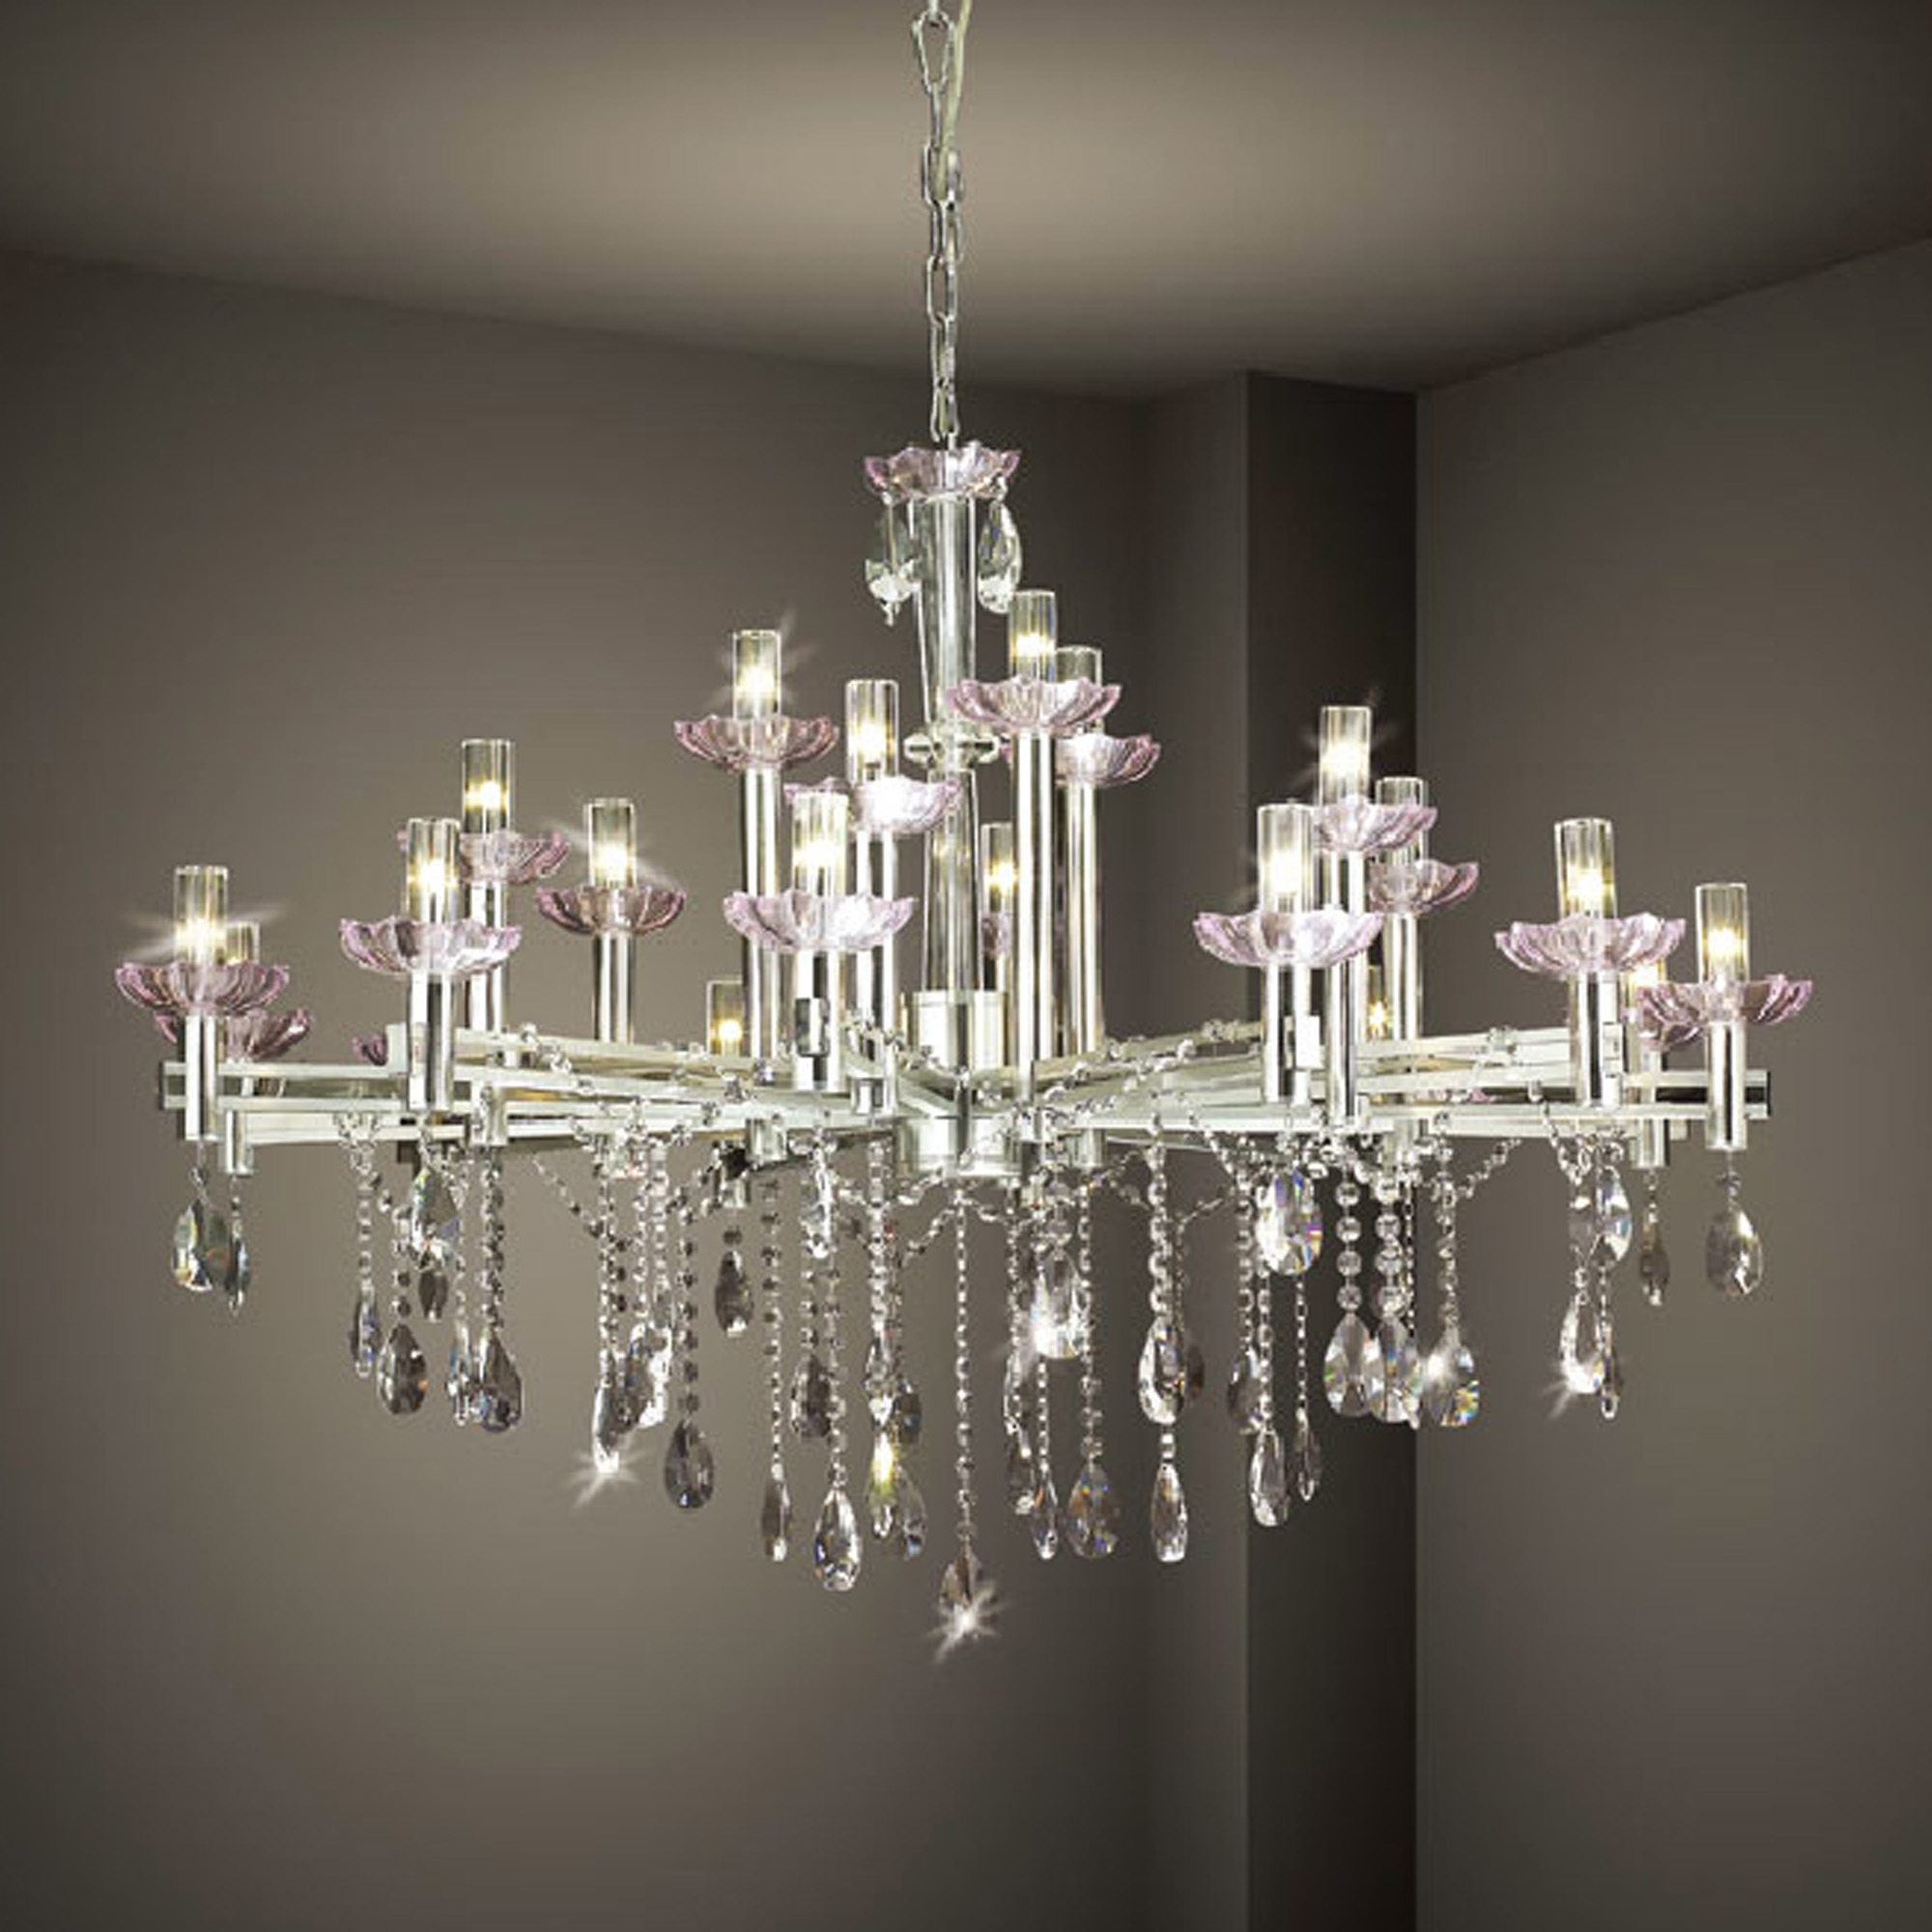 Chandelier Inspiring White Modern Chandelier White And Crystal Intended For Large Modern Chandeliers (#5 of 12)